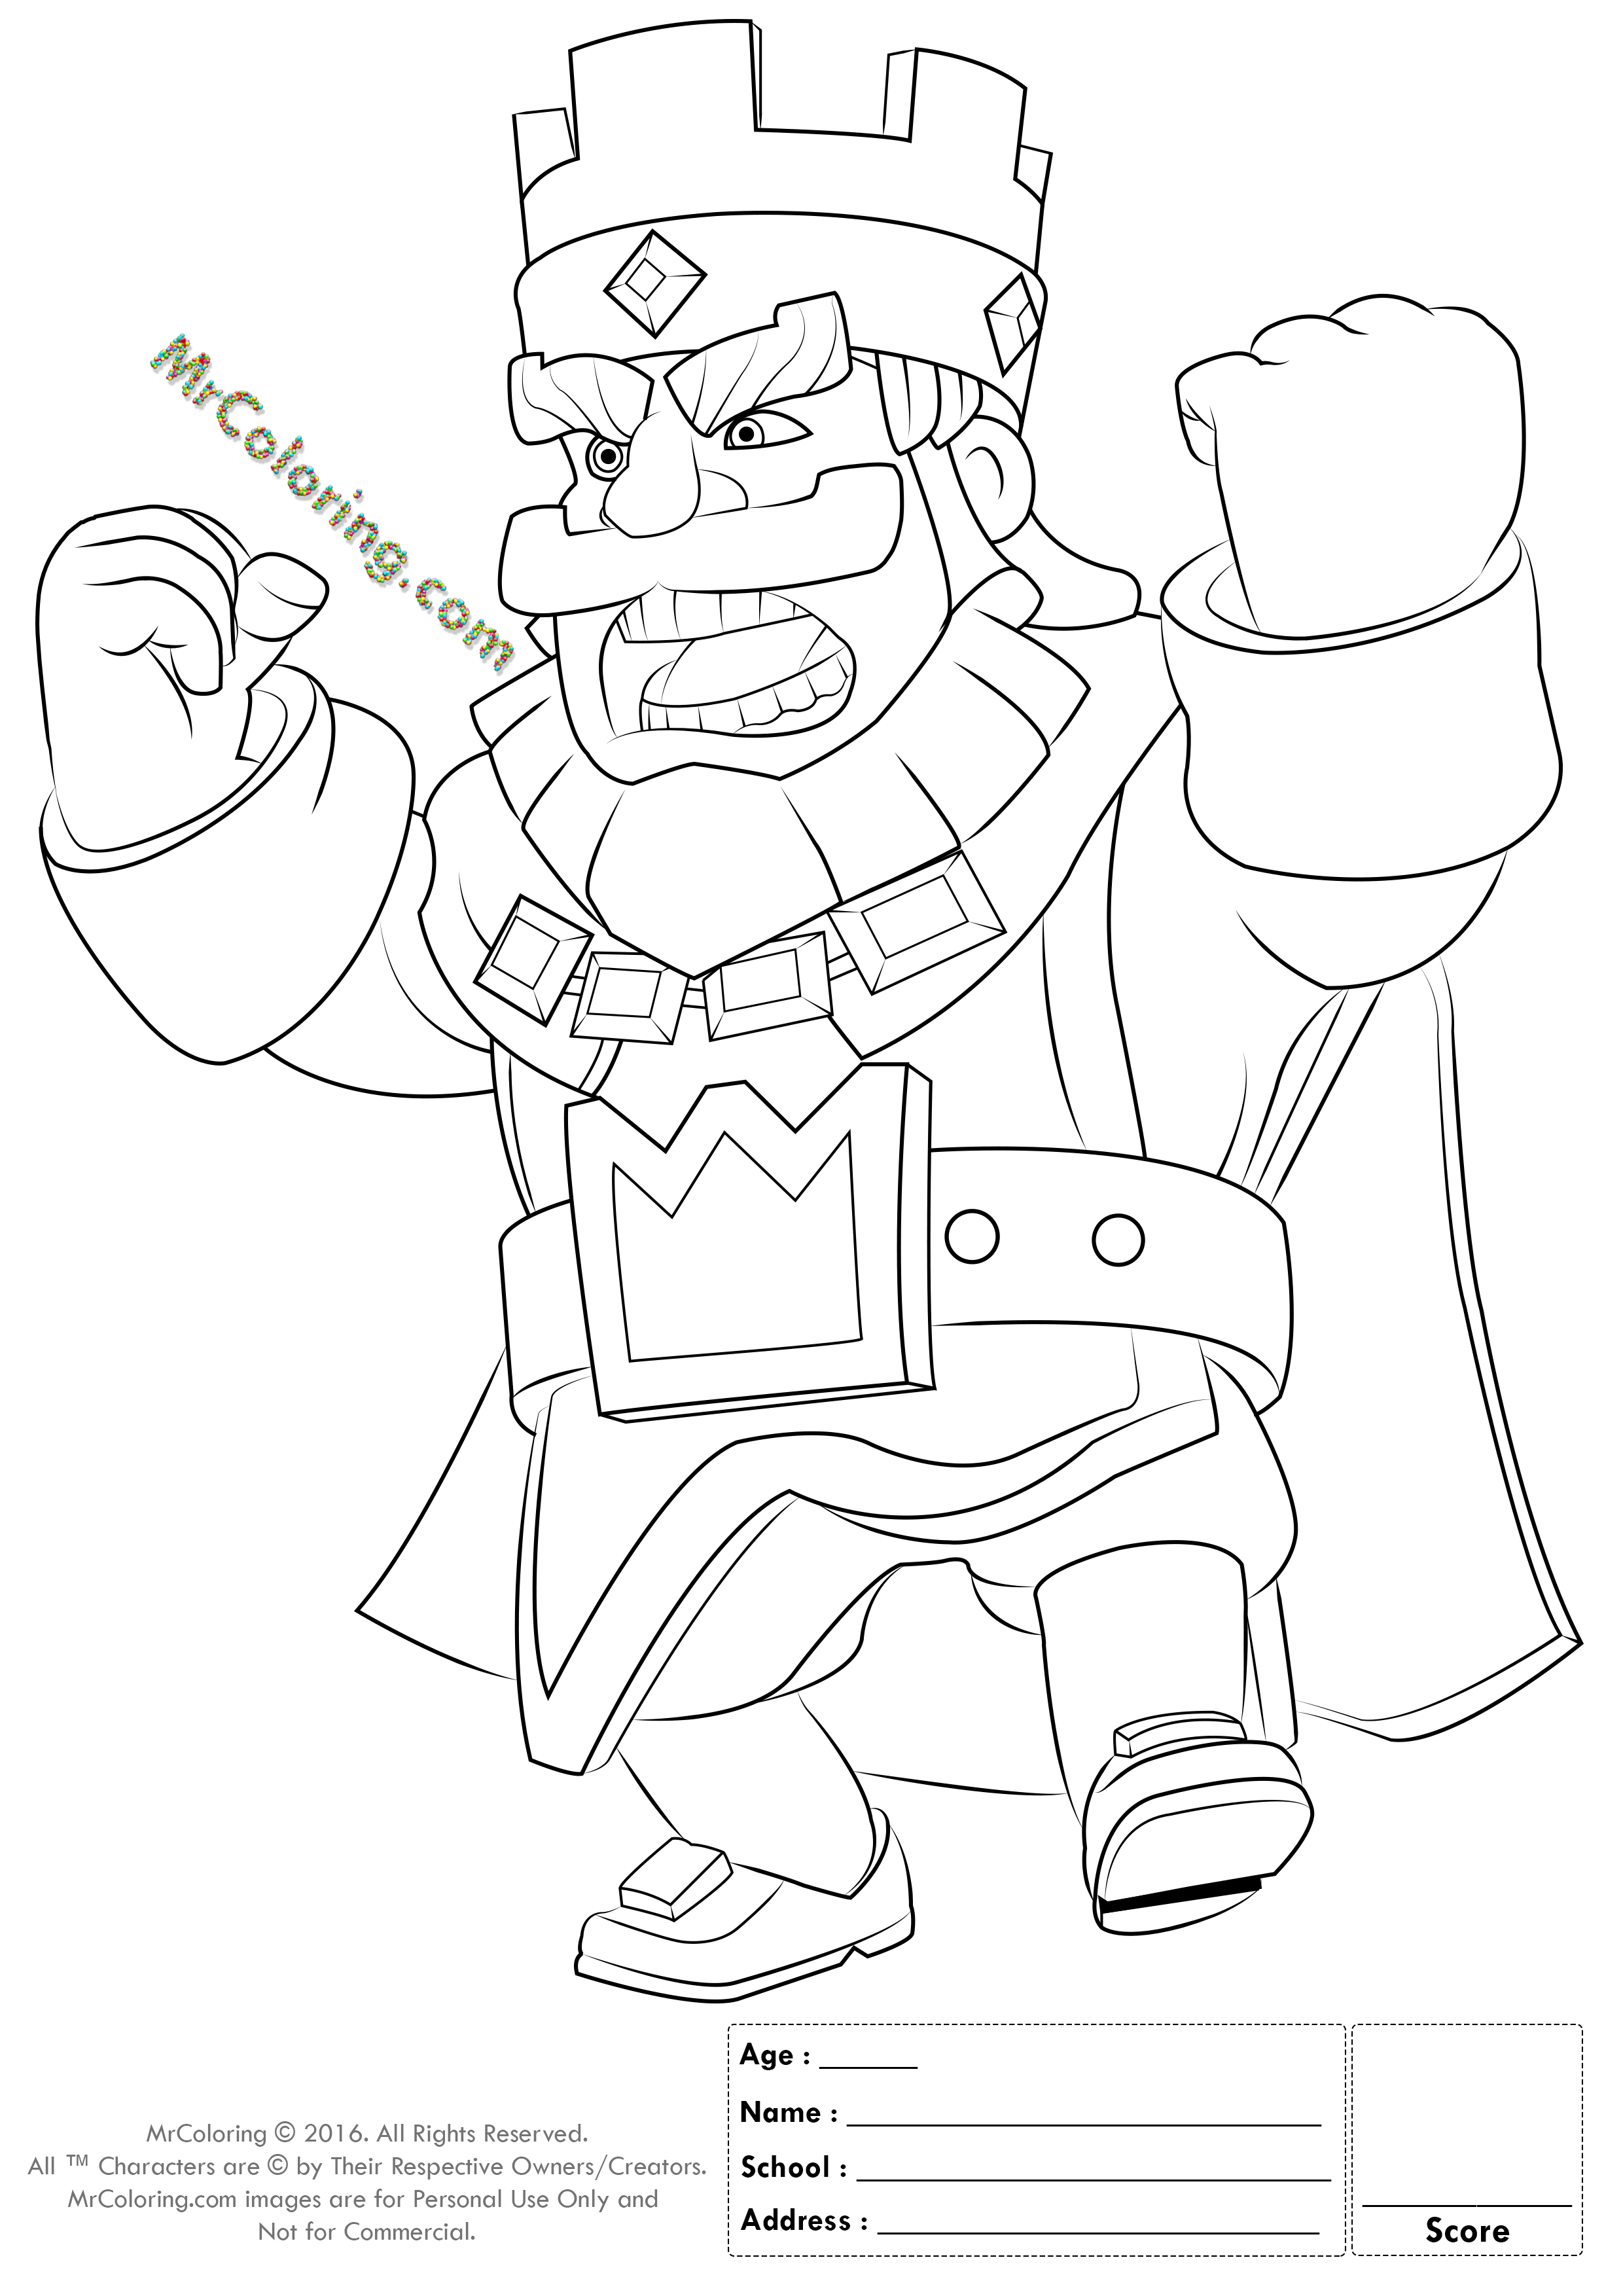 Online coloring pages - Printable Red King Clash Royale Online Coloring Pages 1